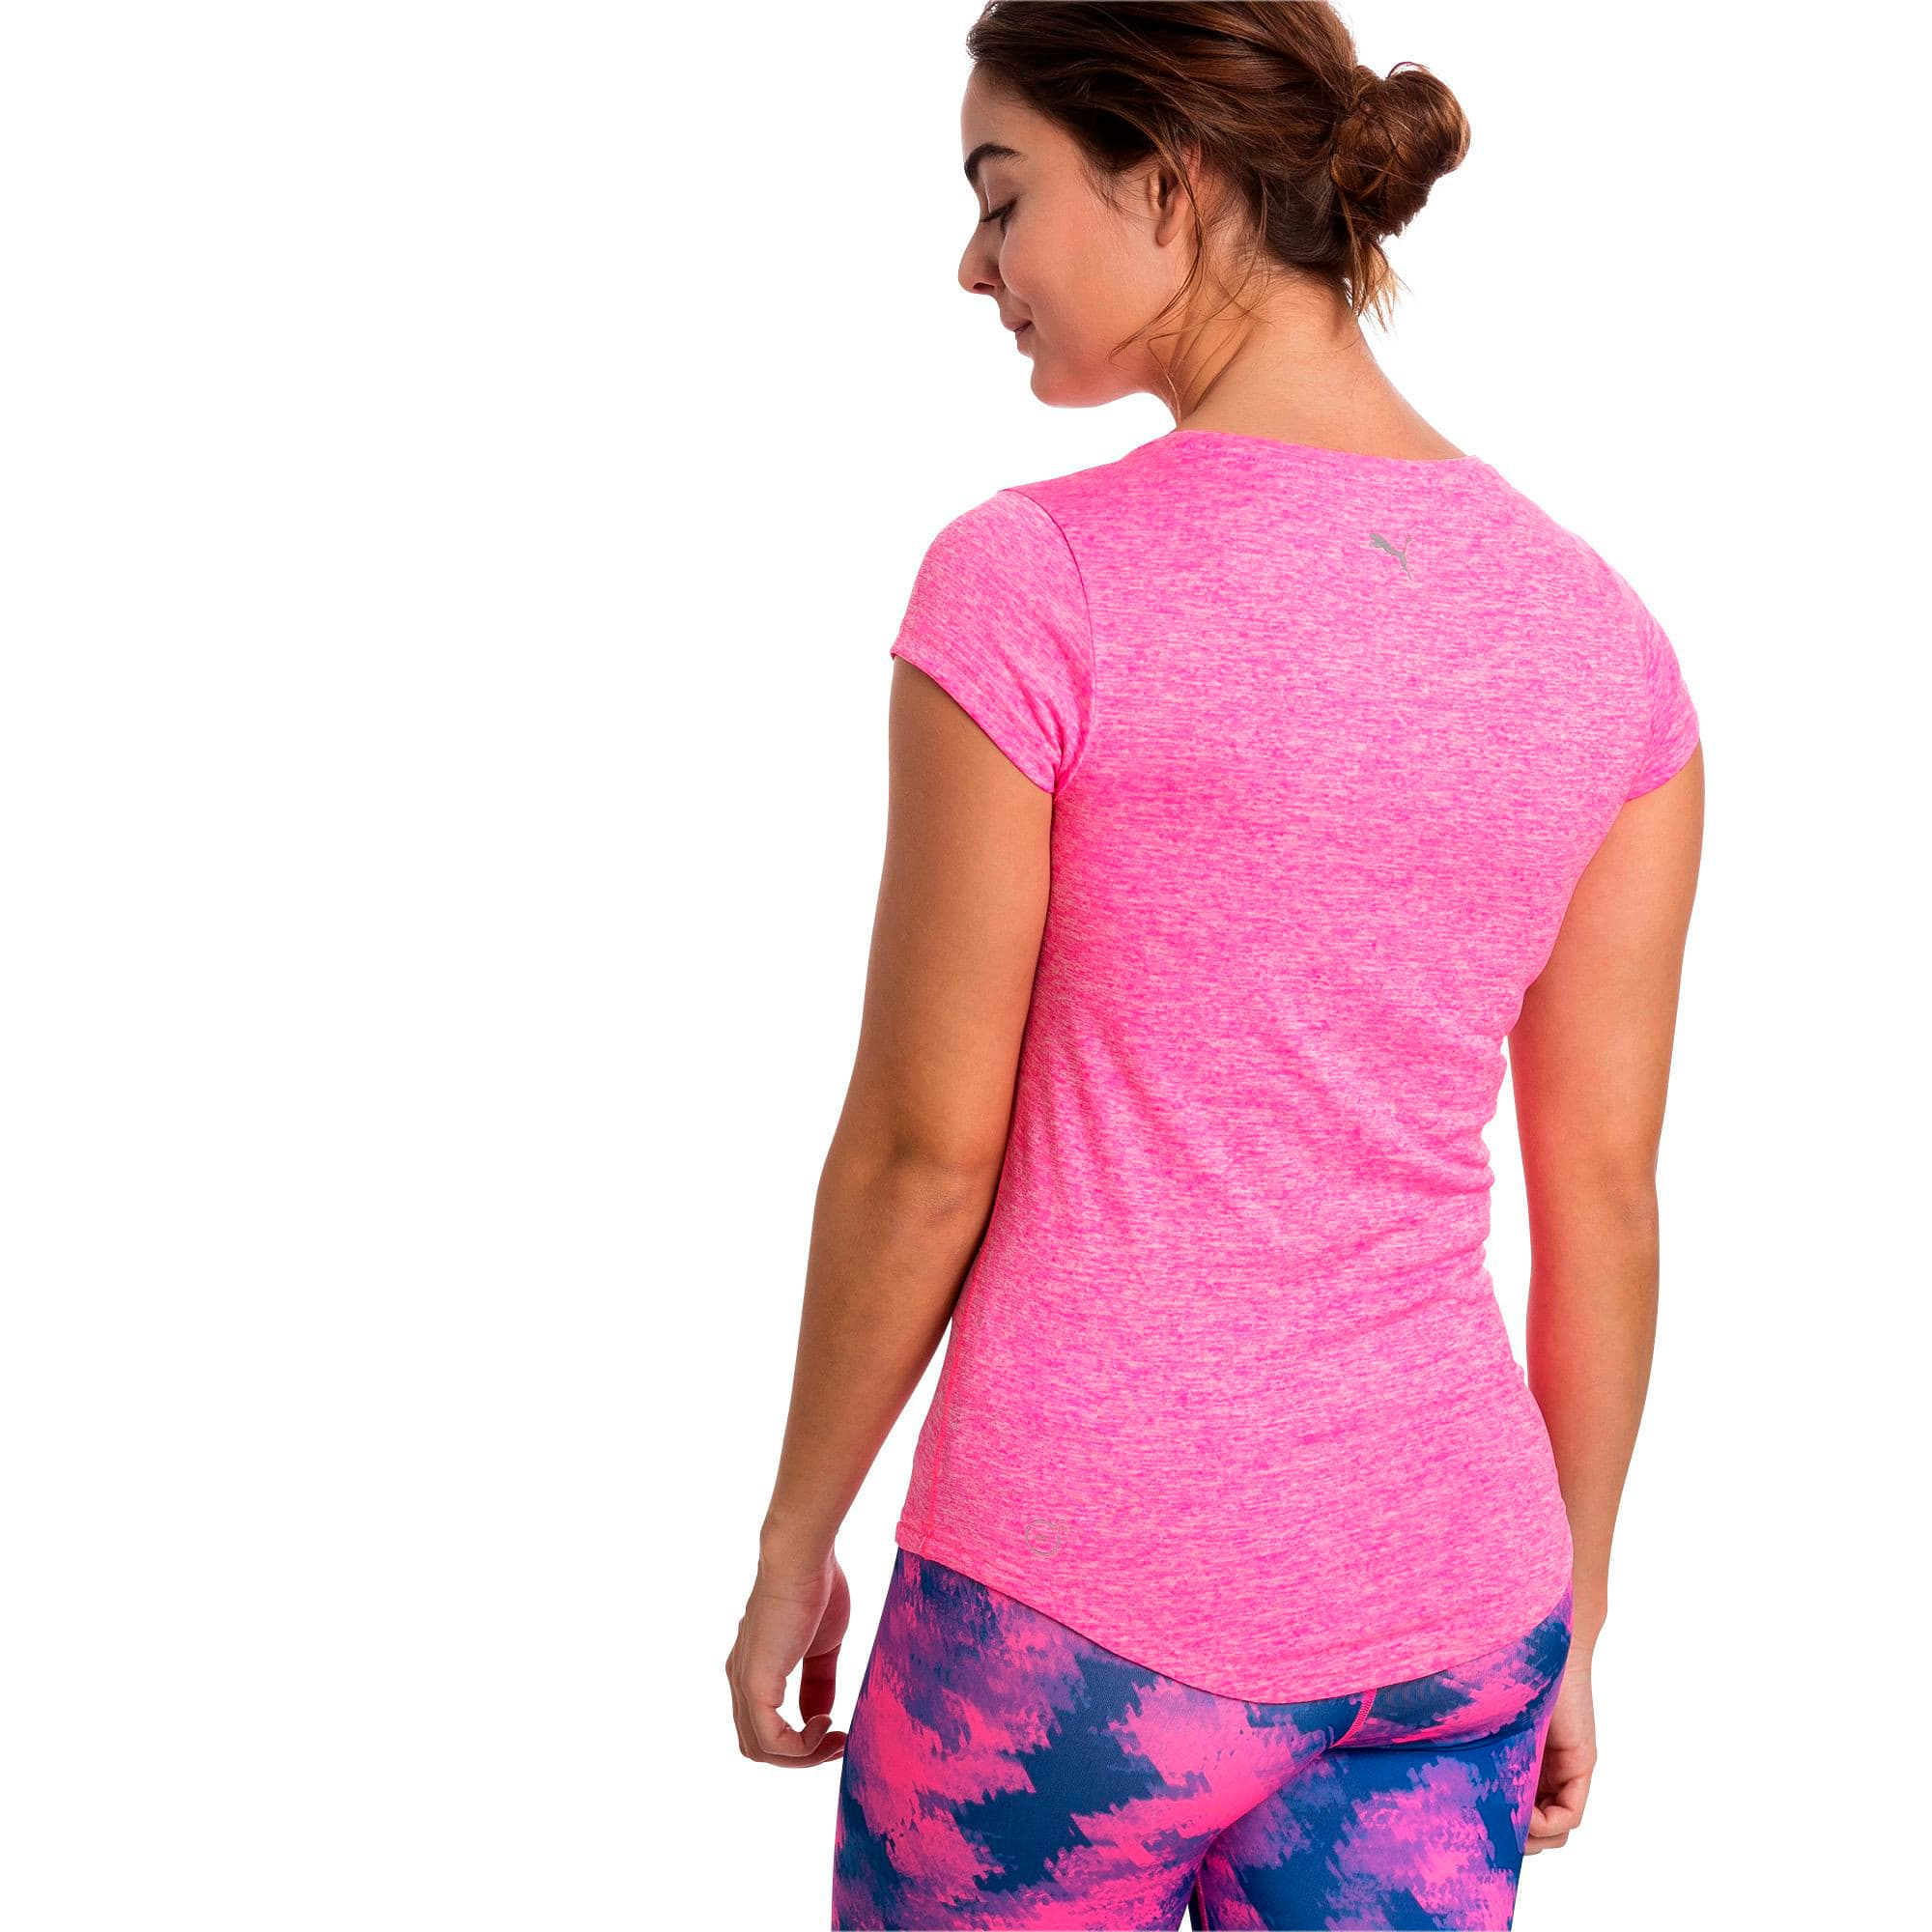 Thumbnail 2 of Active Training Women's Heather Cat T-Shirt, KNOCKOUT PINK Heather, medium-IND